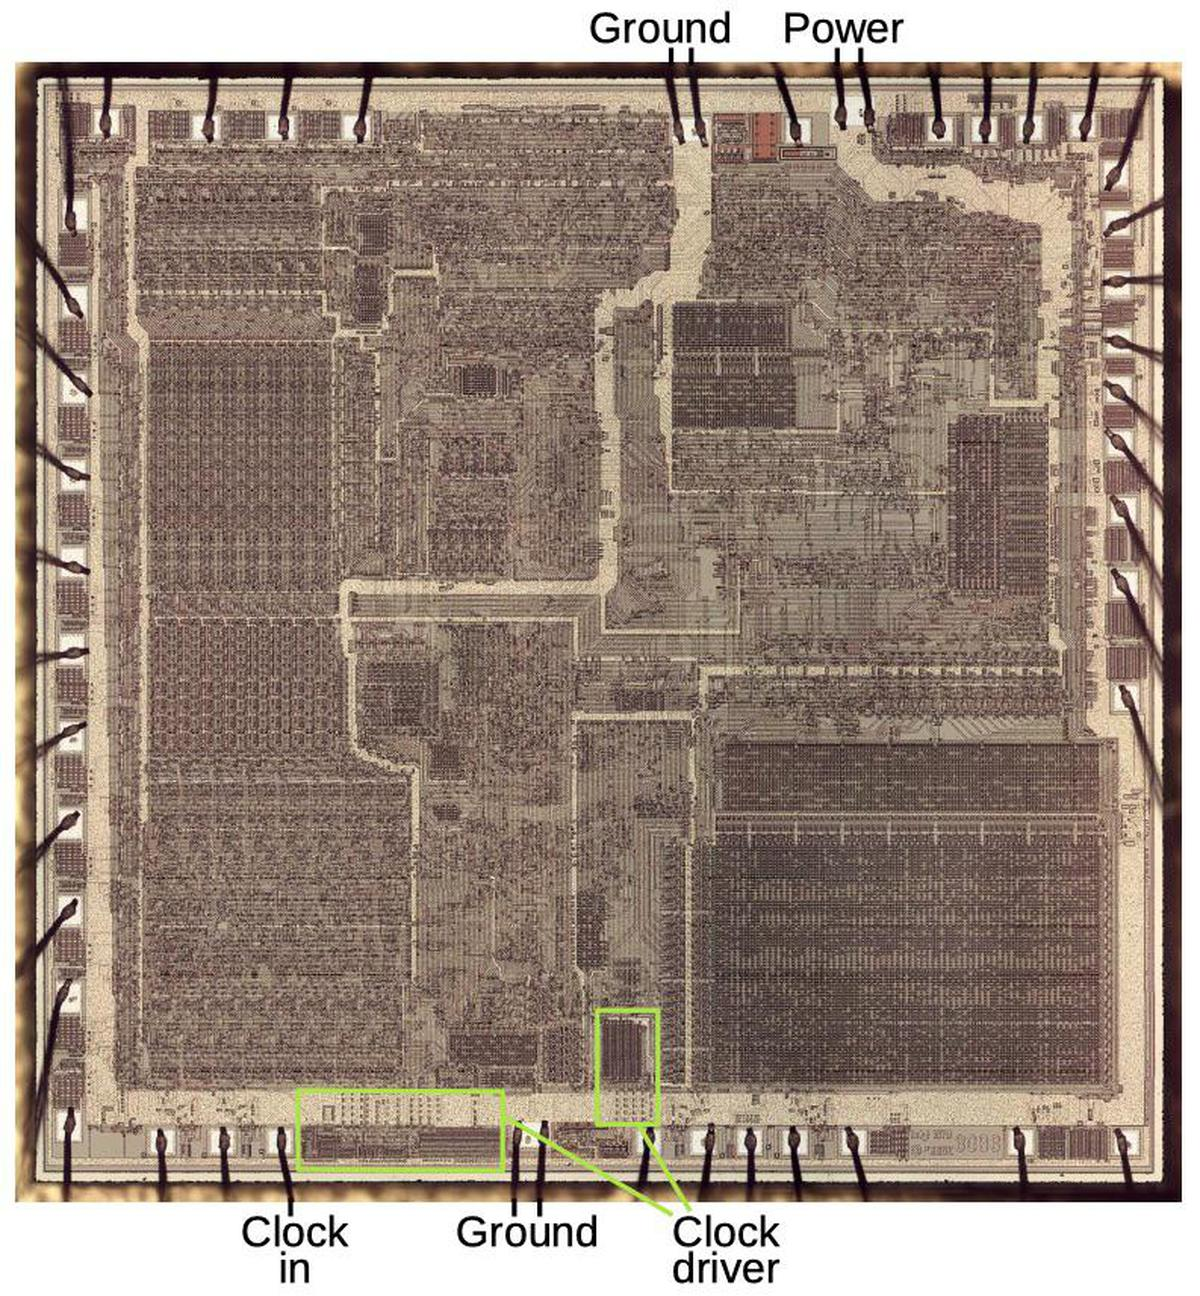 Die photo of the 8086 showing power connection (top) and ground connections (top, bottom). The clock circuitry is at the bottom.